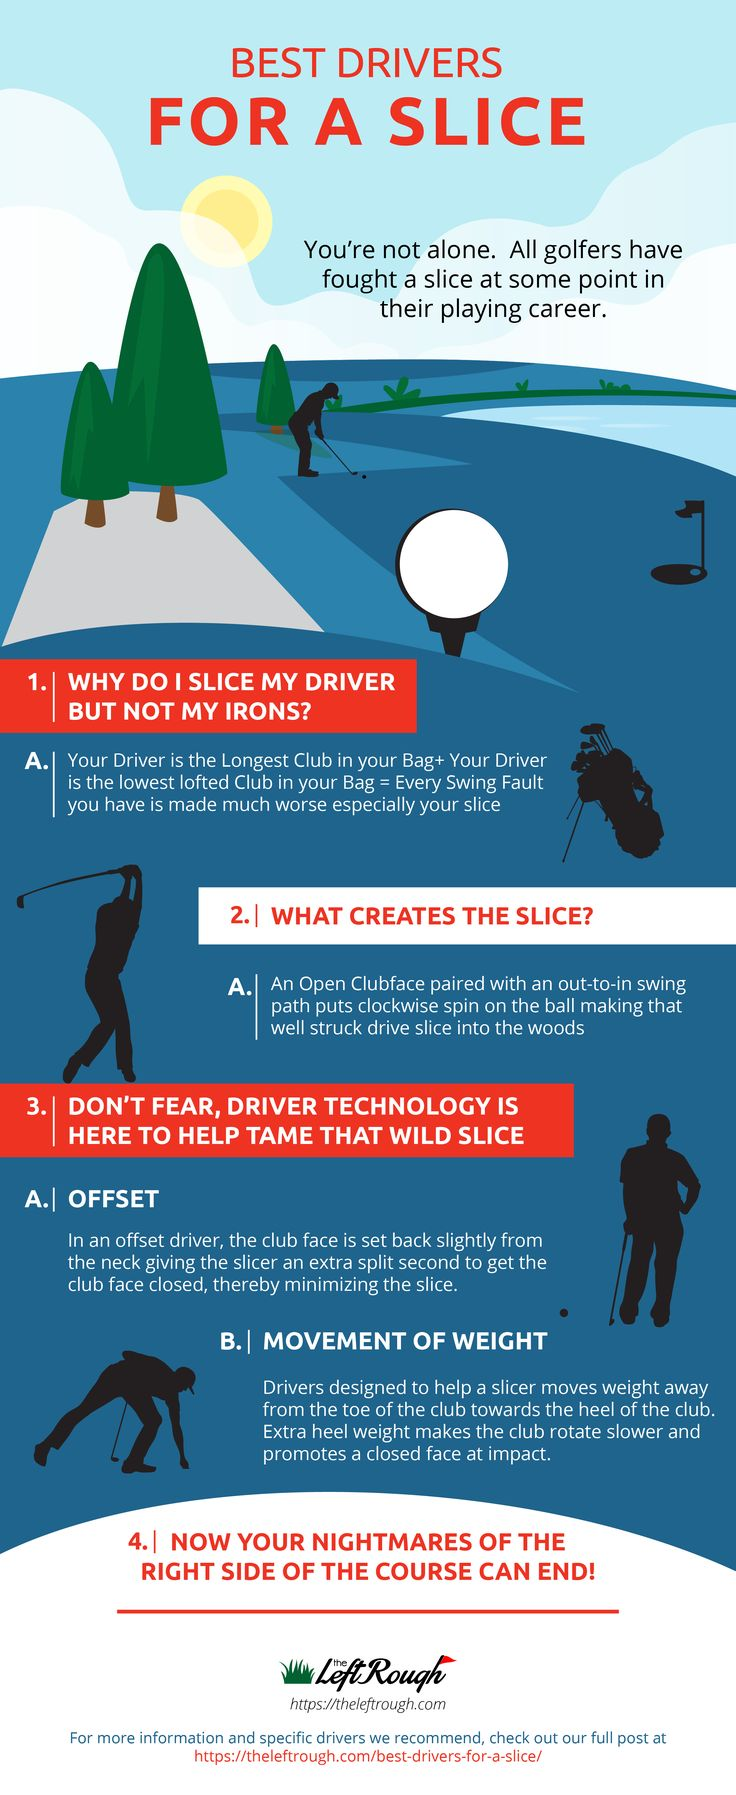 How to select a golf driver that will help cure a slice #GolfBeginners